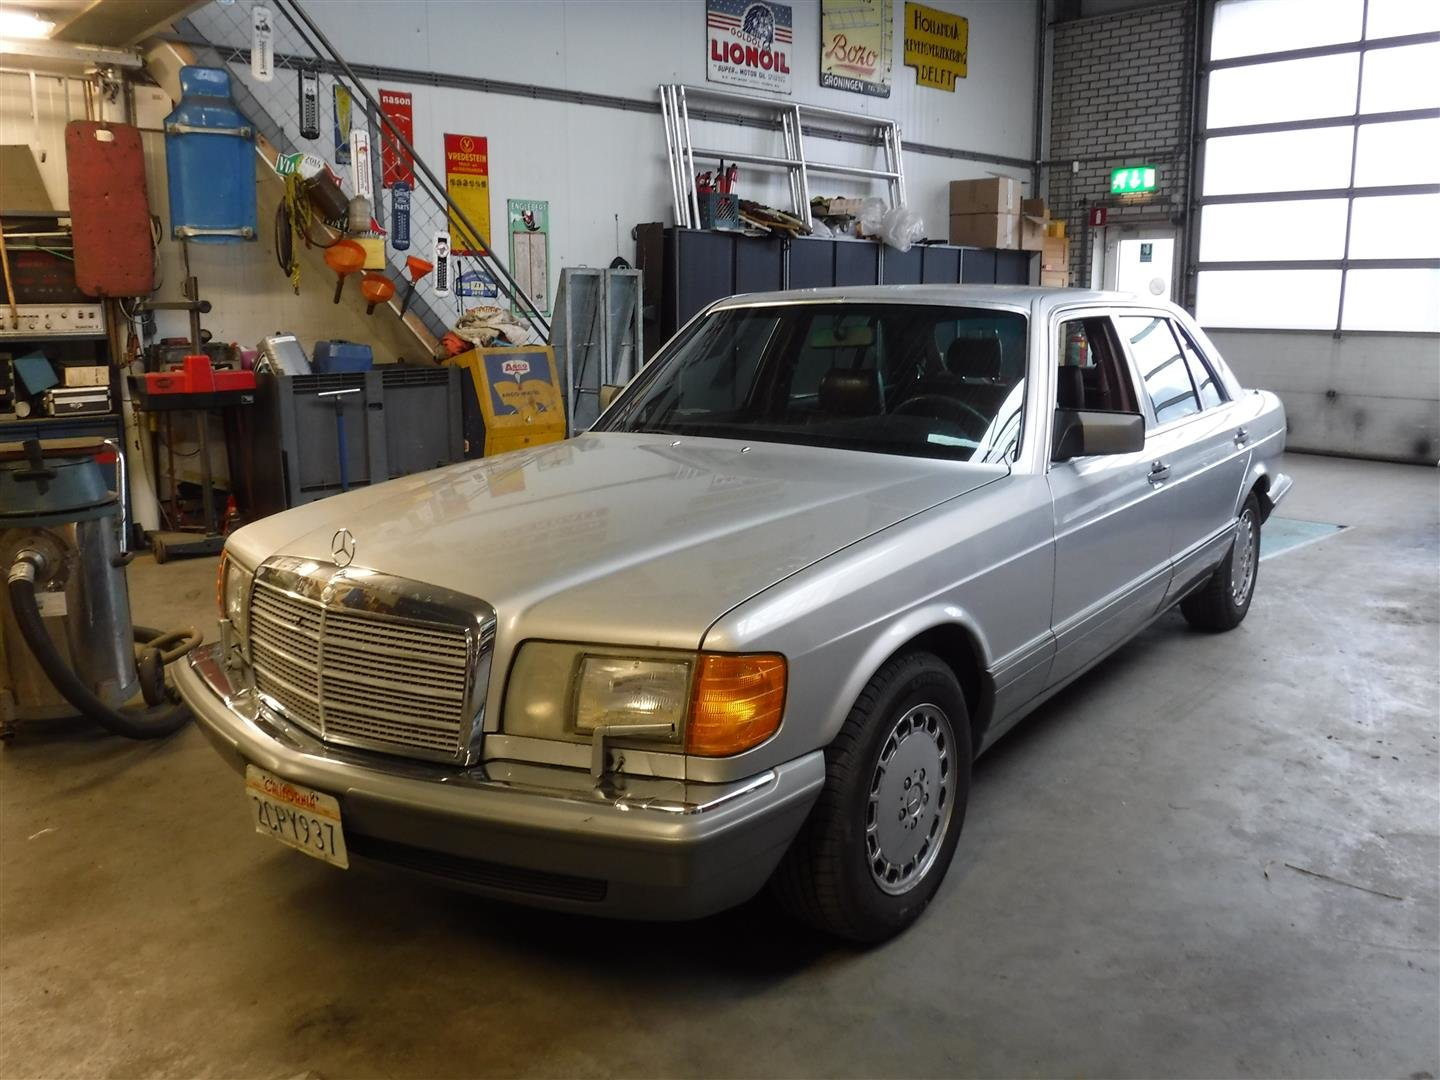 1986 Mercedes Benz 420 SEL '86 For Sale (picture 2 of 6)